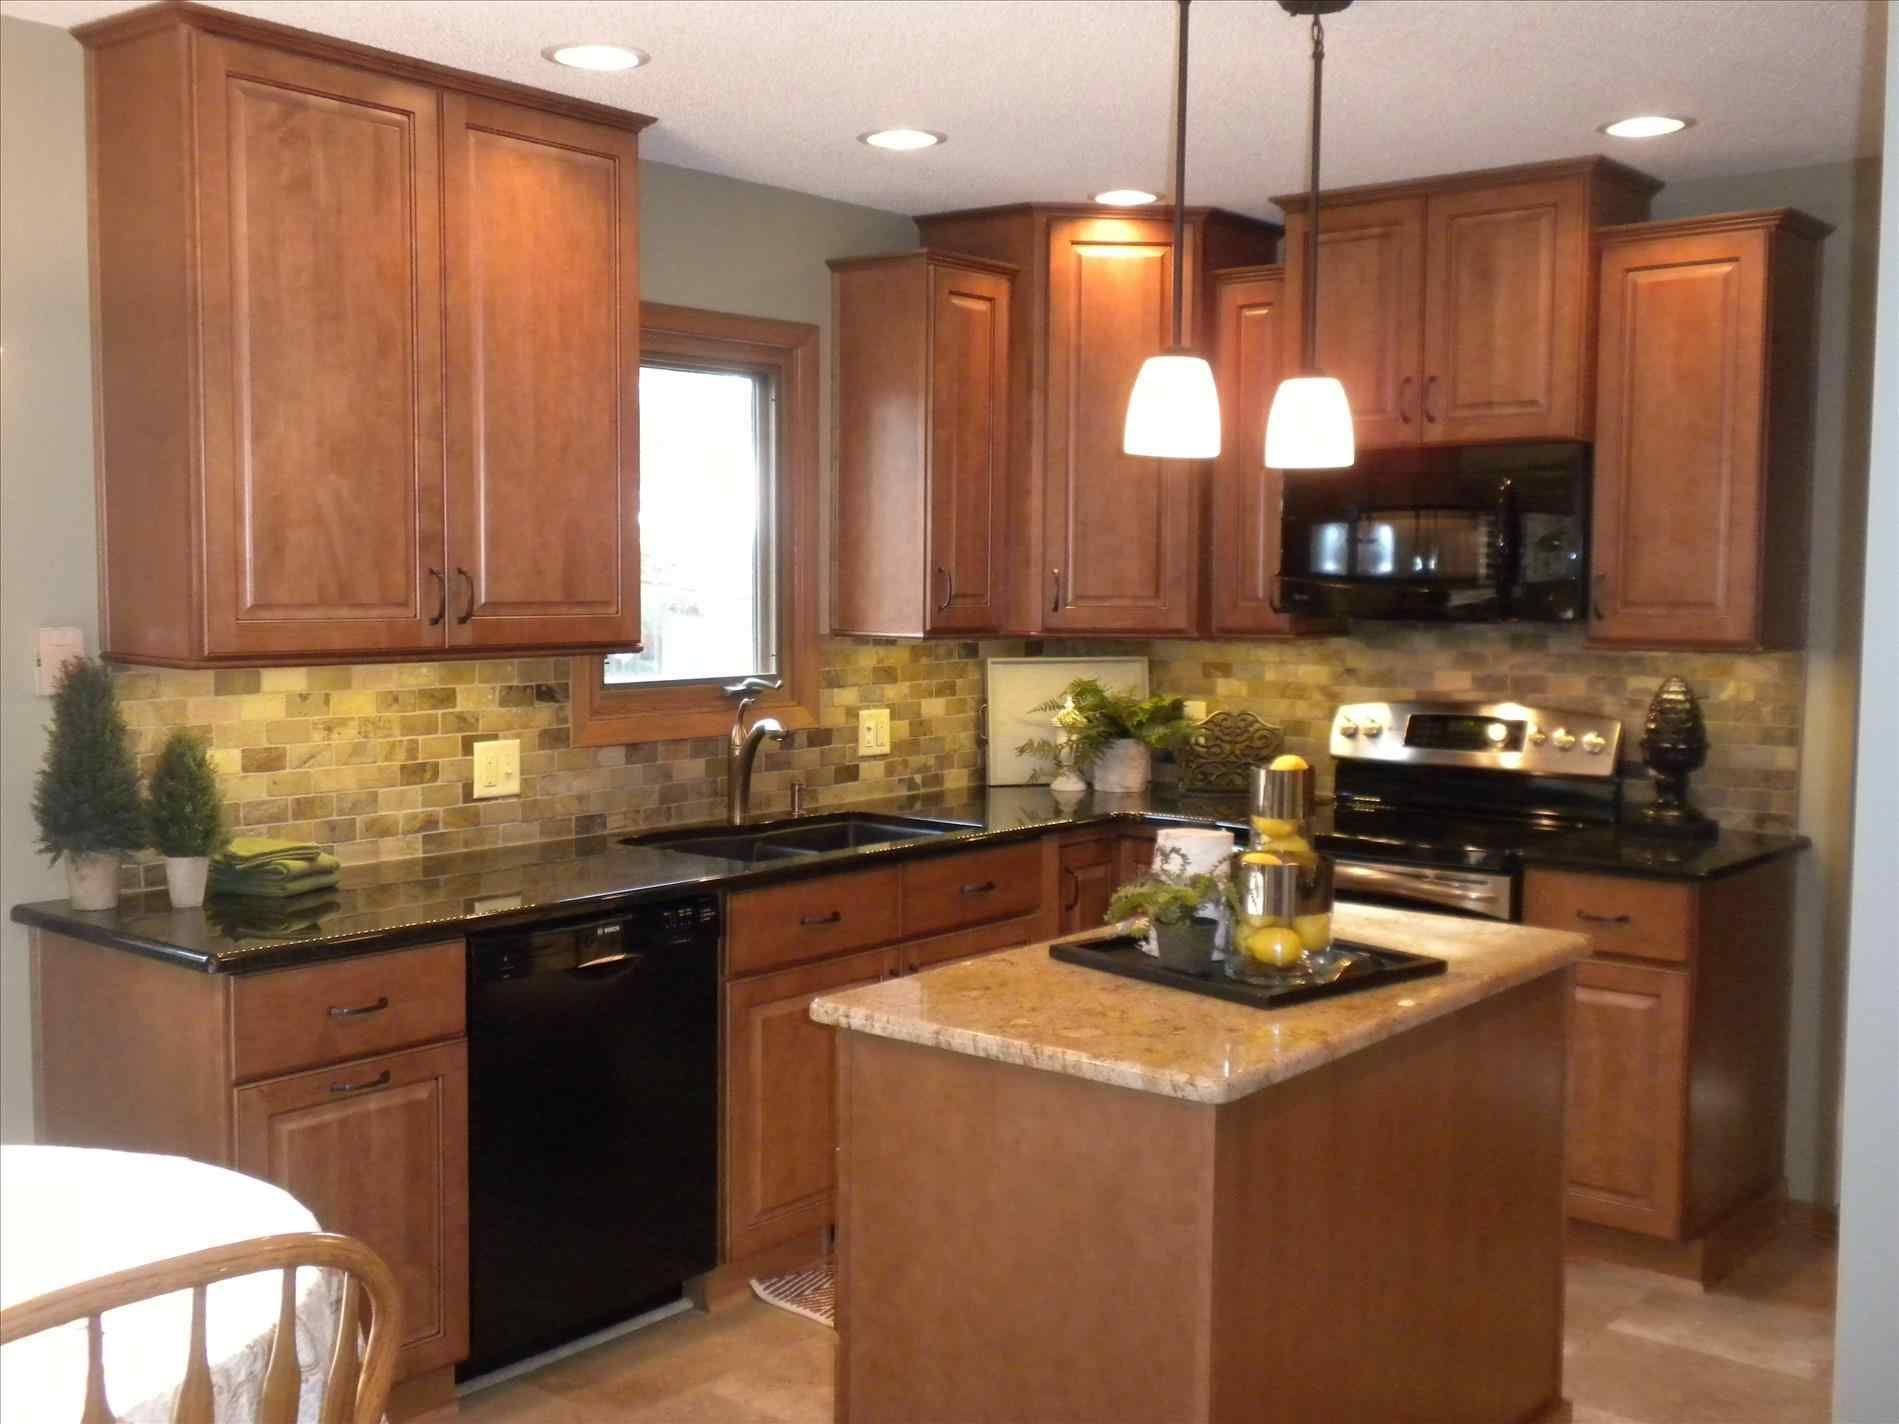 black stainless steel appliances with oak cabinets colors and